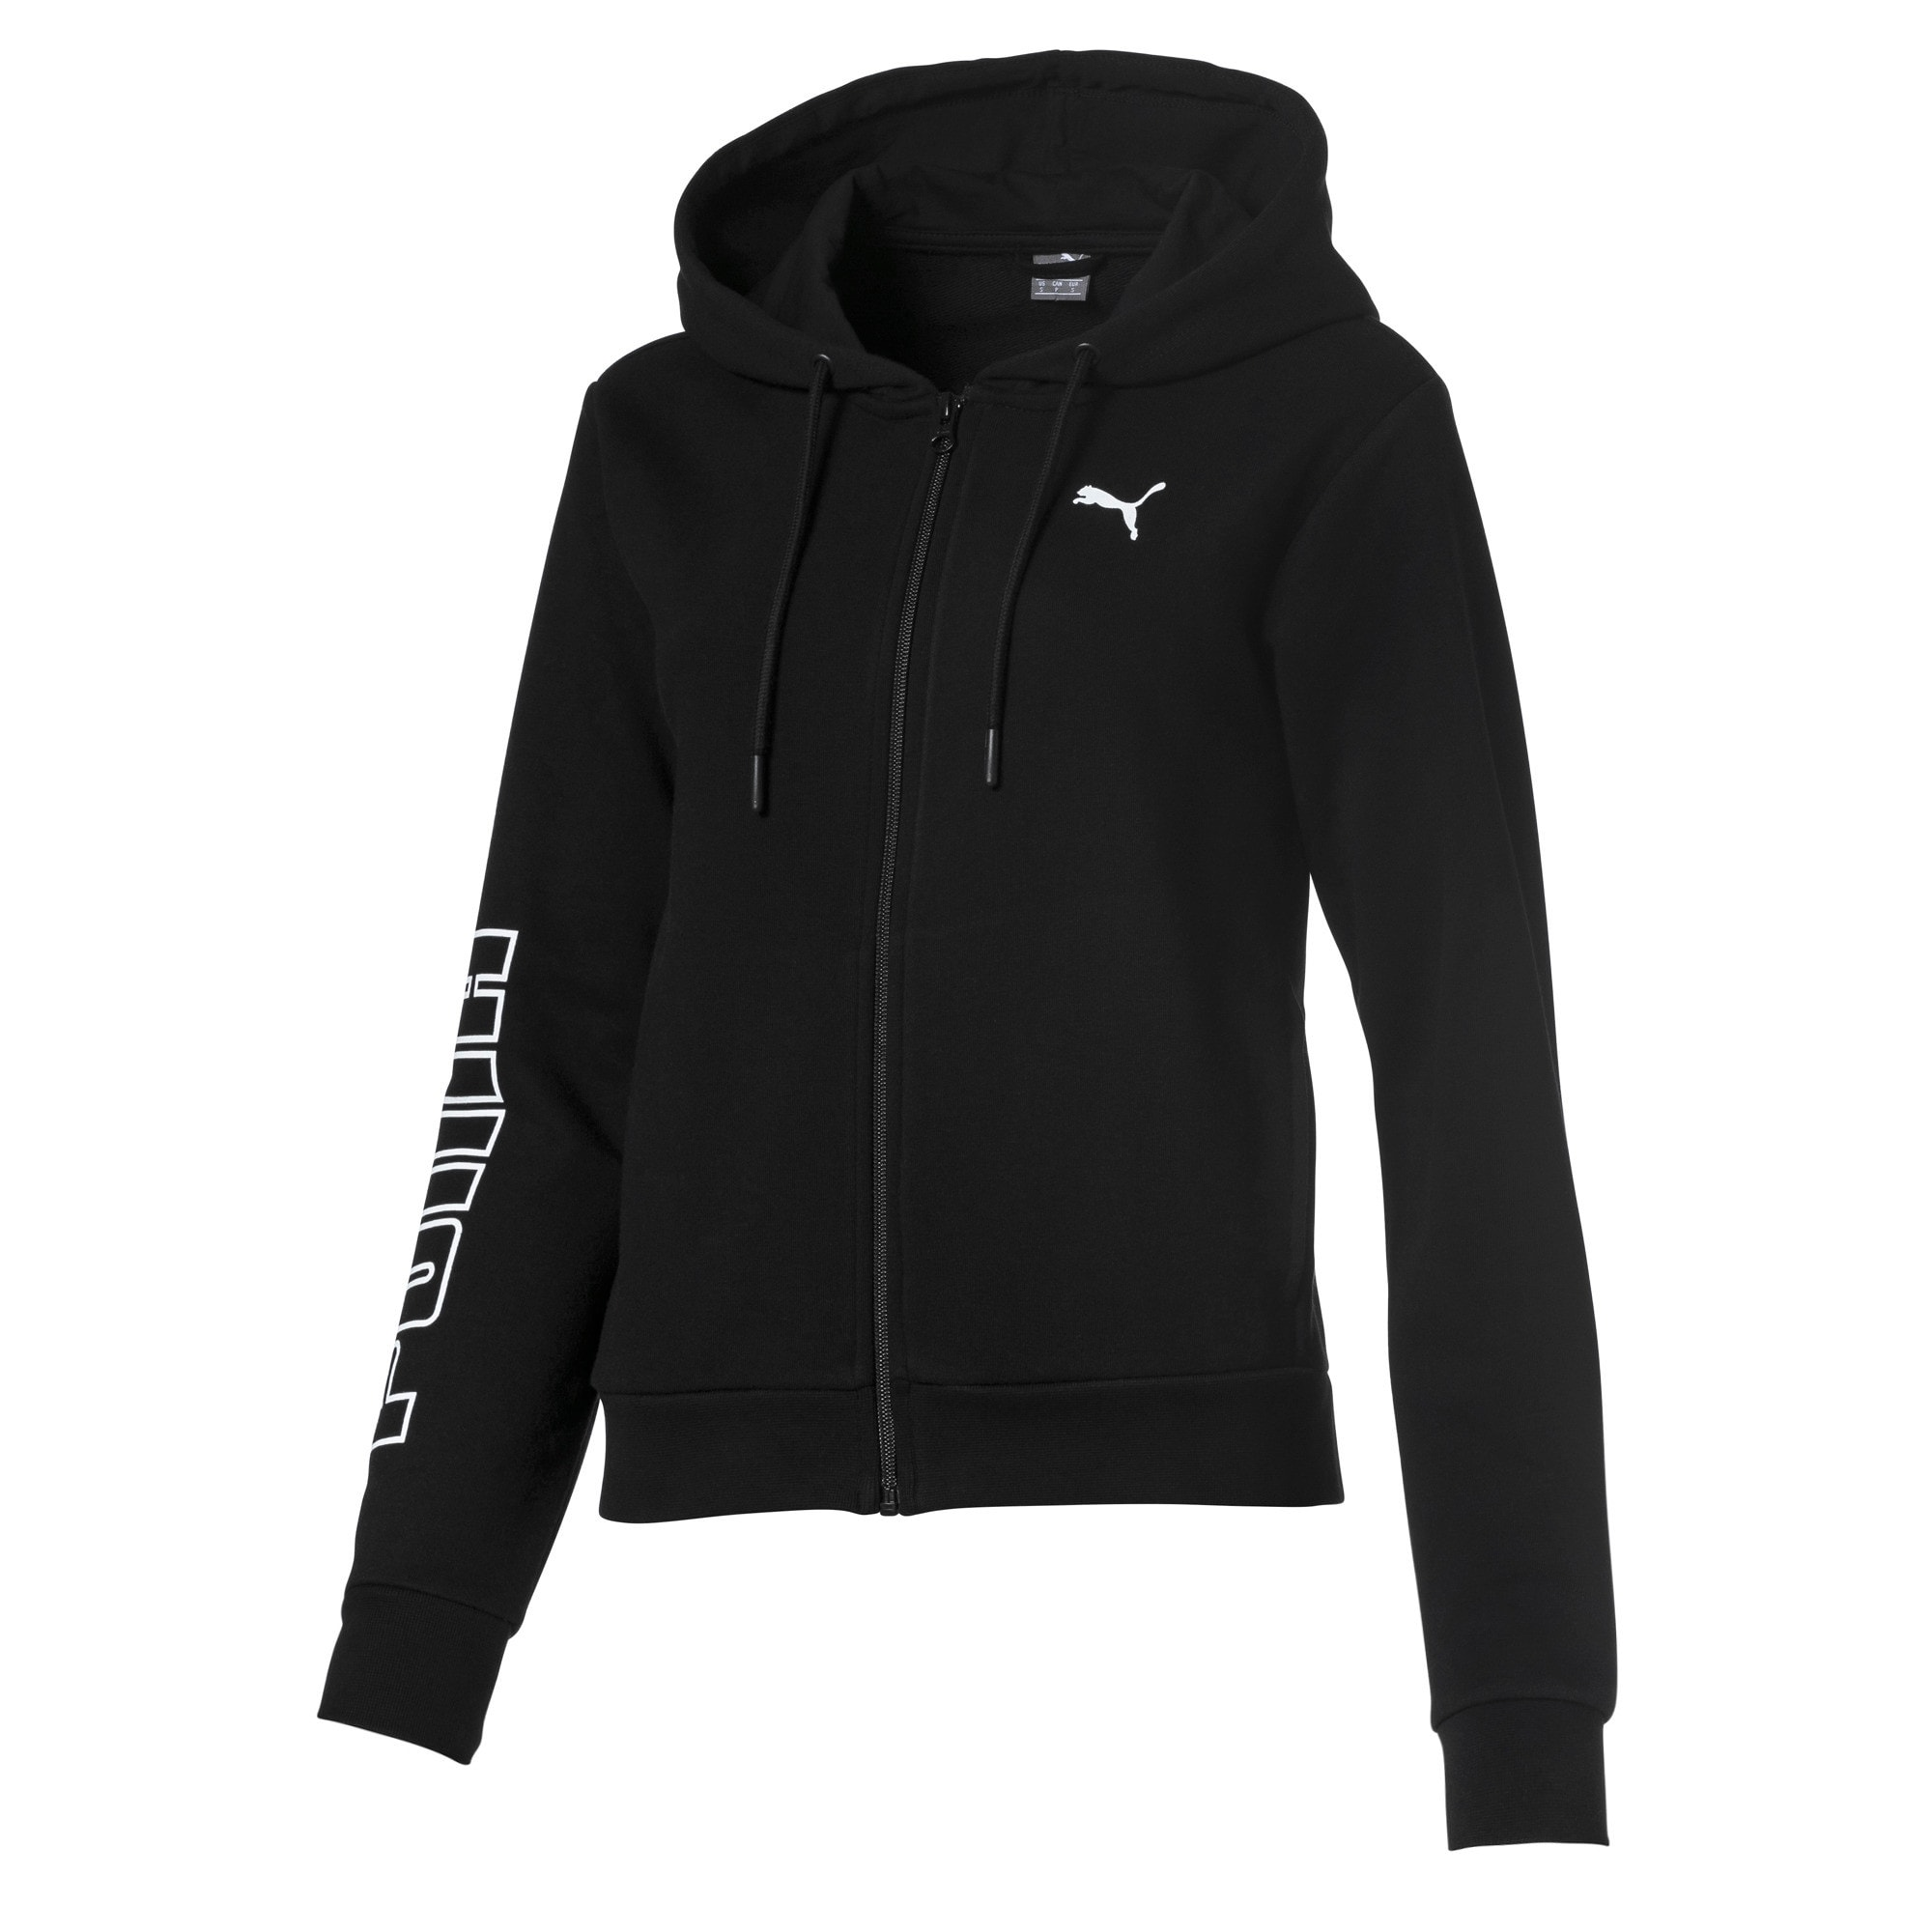 Thumbnail 1 of Full Zip Hooded Women's Sweat Jacket, Puma Black, medium